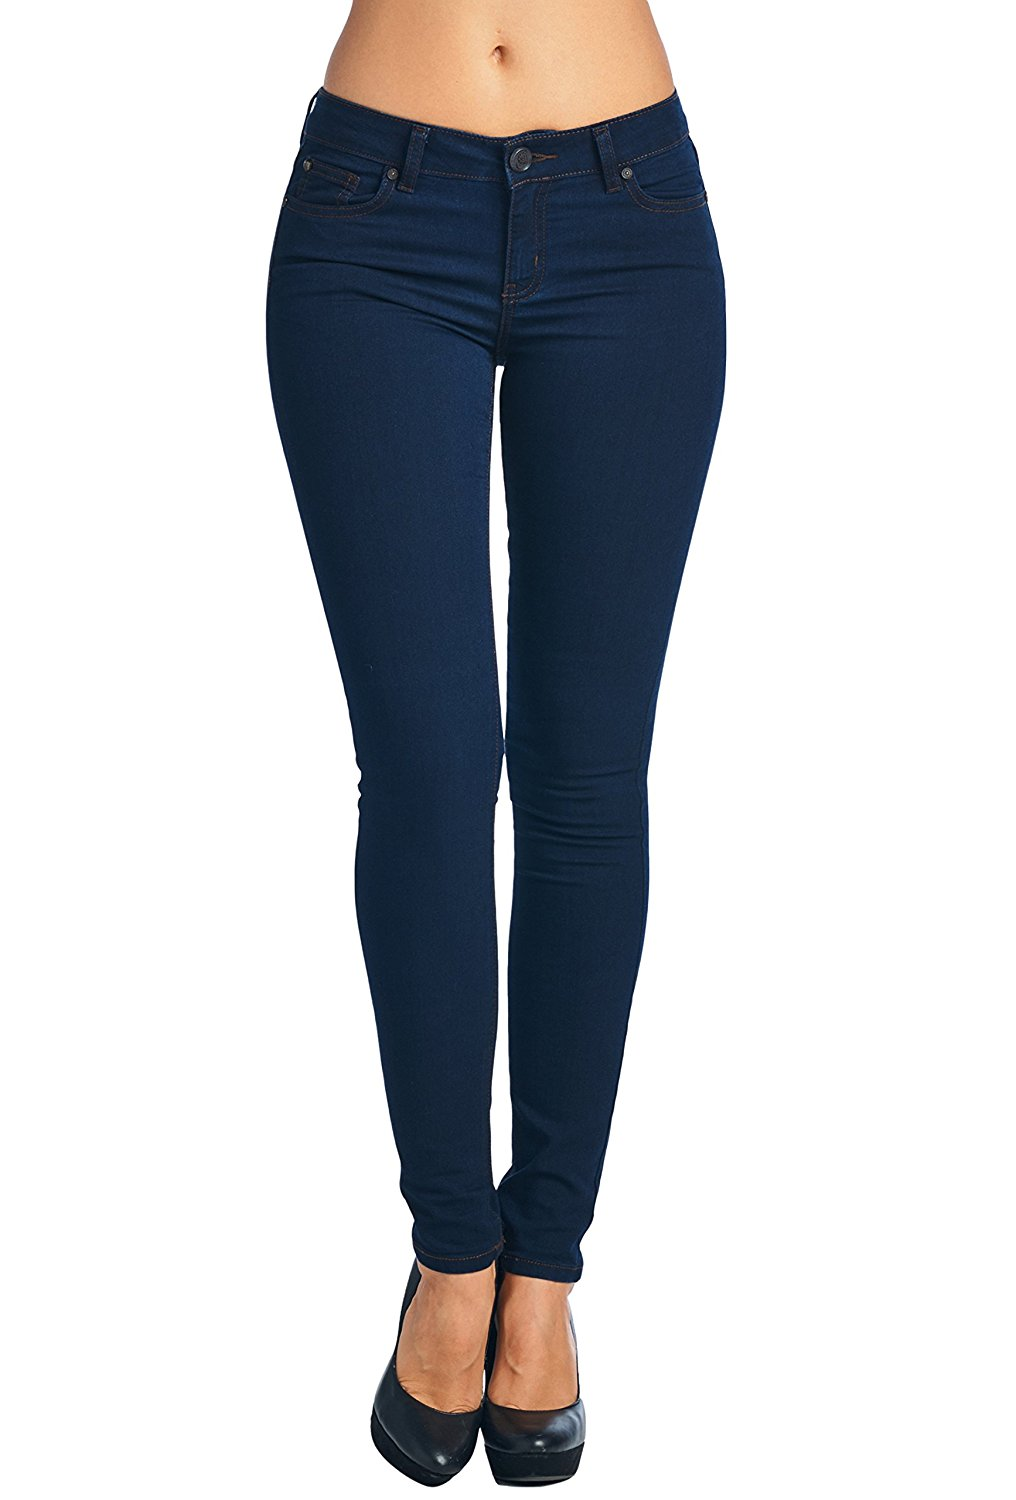 Vialumi Womens Juniors Solid Stretch Fit Five Pocket Skinny Jeans Sizes 0-17 at Amazon Women's Jeans store